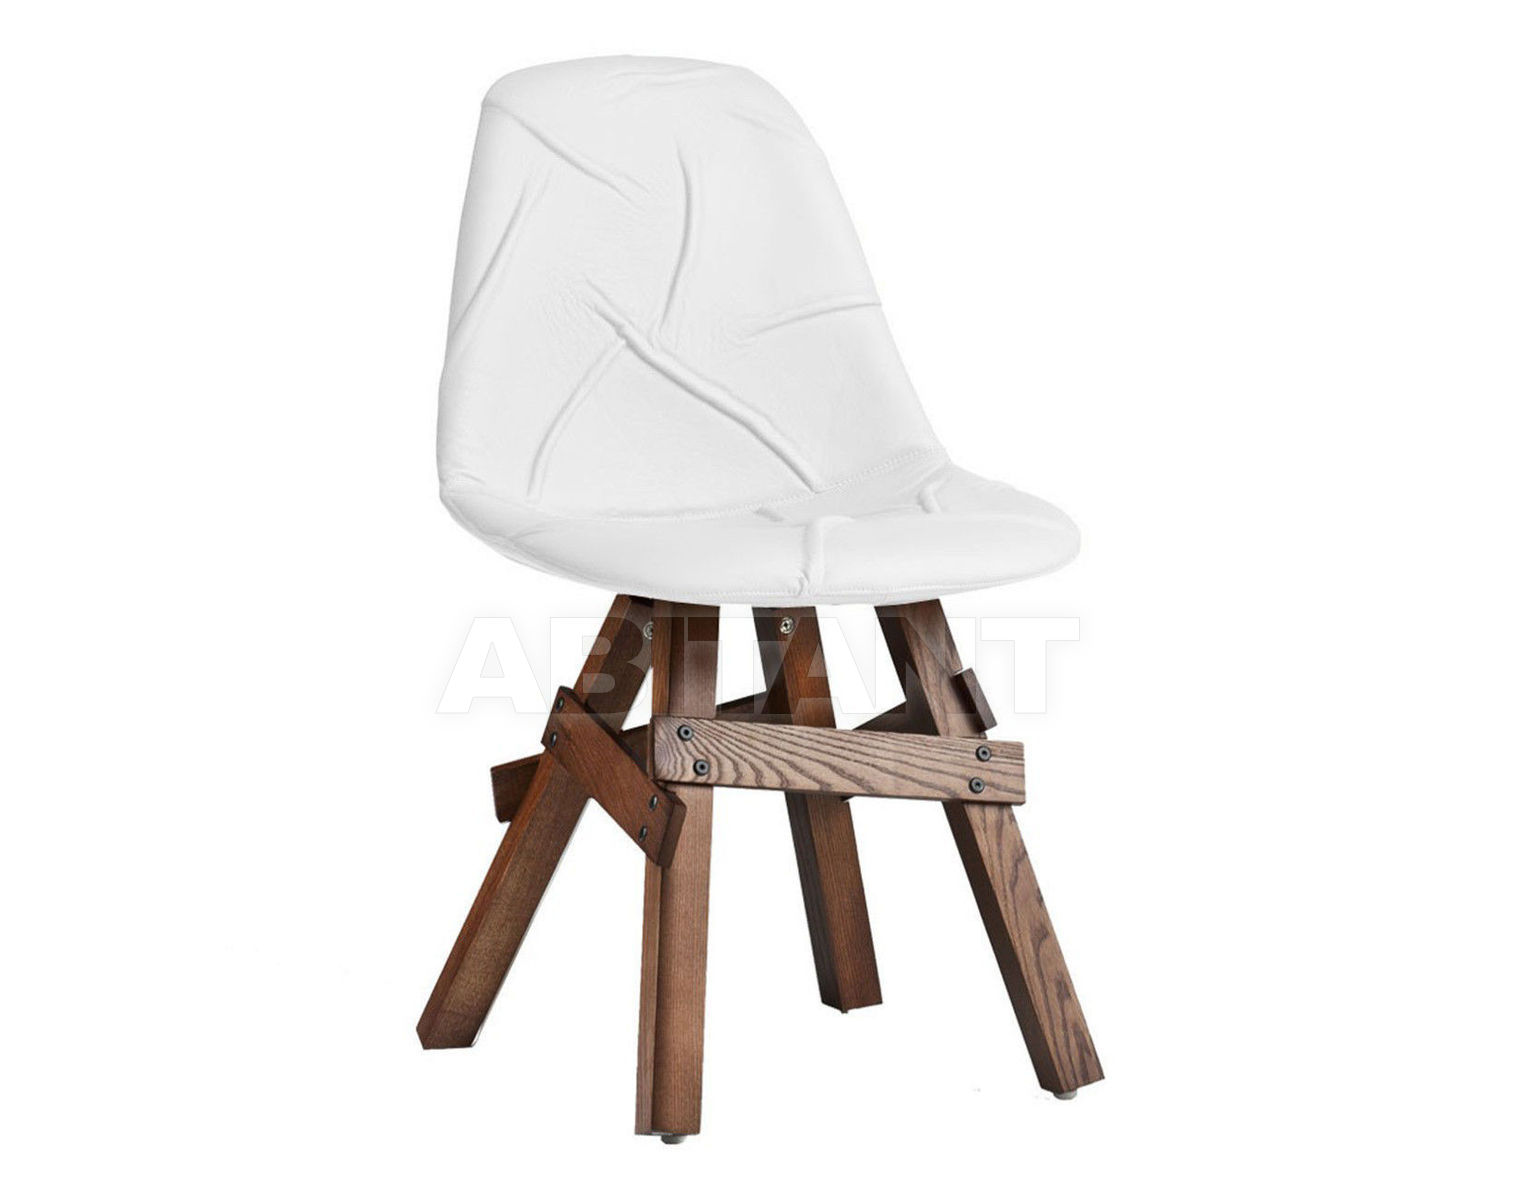 Купить Стул Kubikoff Sander Mulder ICON'Pop'Chair 3